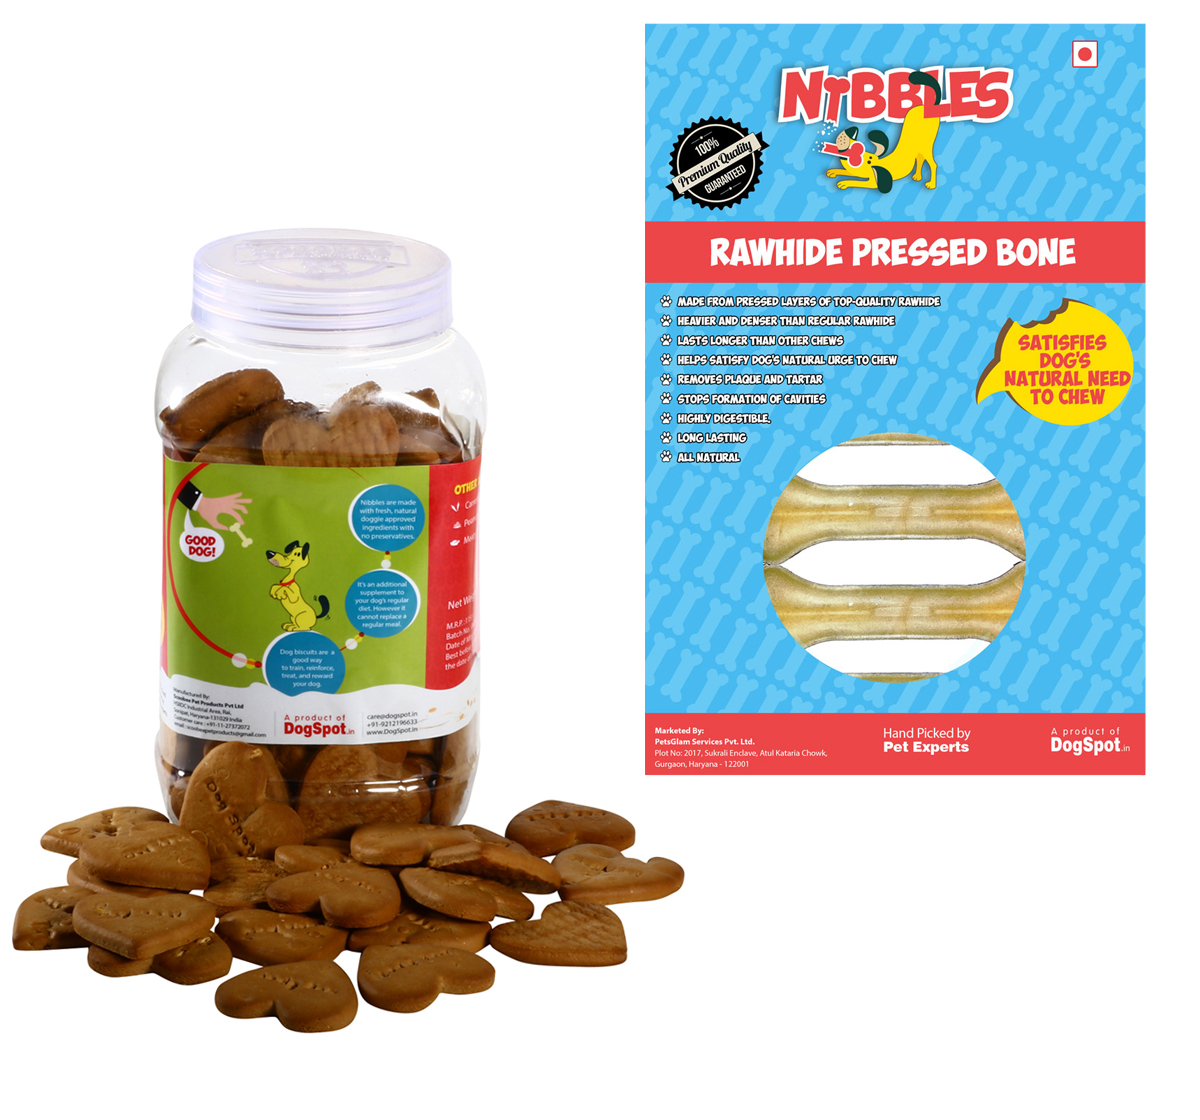 Nibbles Mutigrain & Oats biscuit - 500 gm with Rawhide Bone 4 Inches - 4 pieces